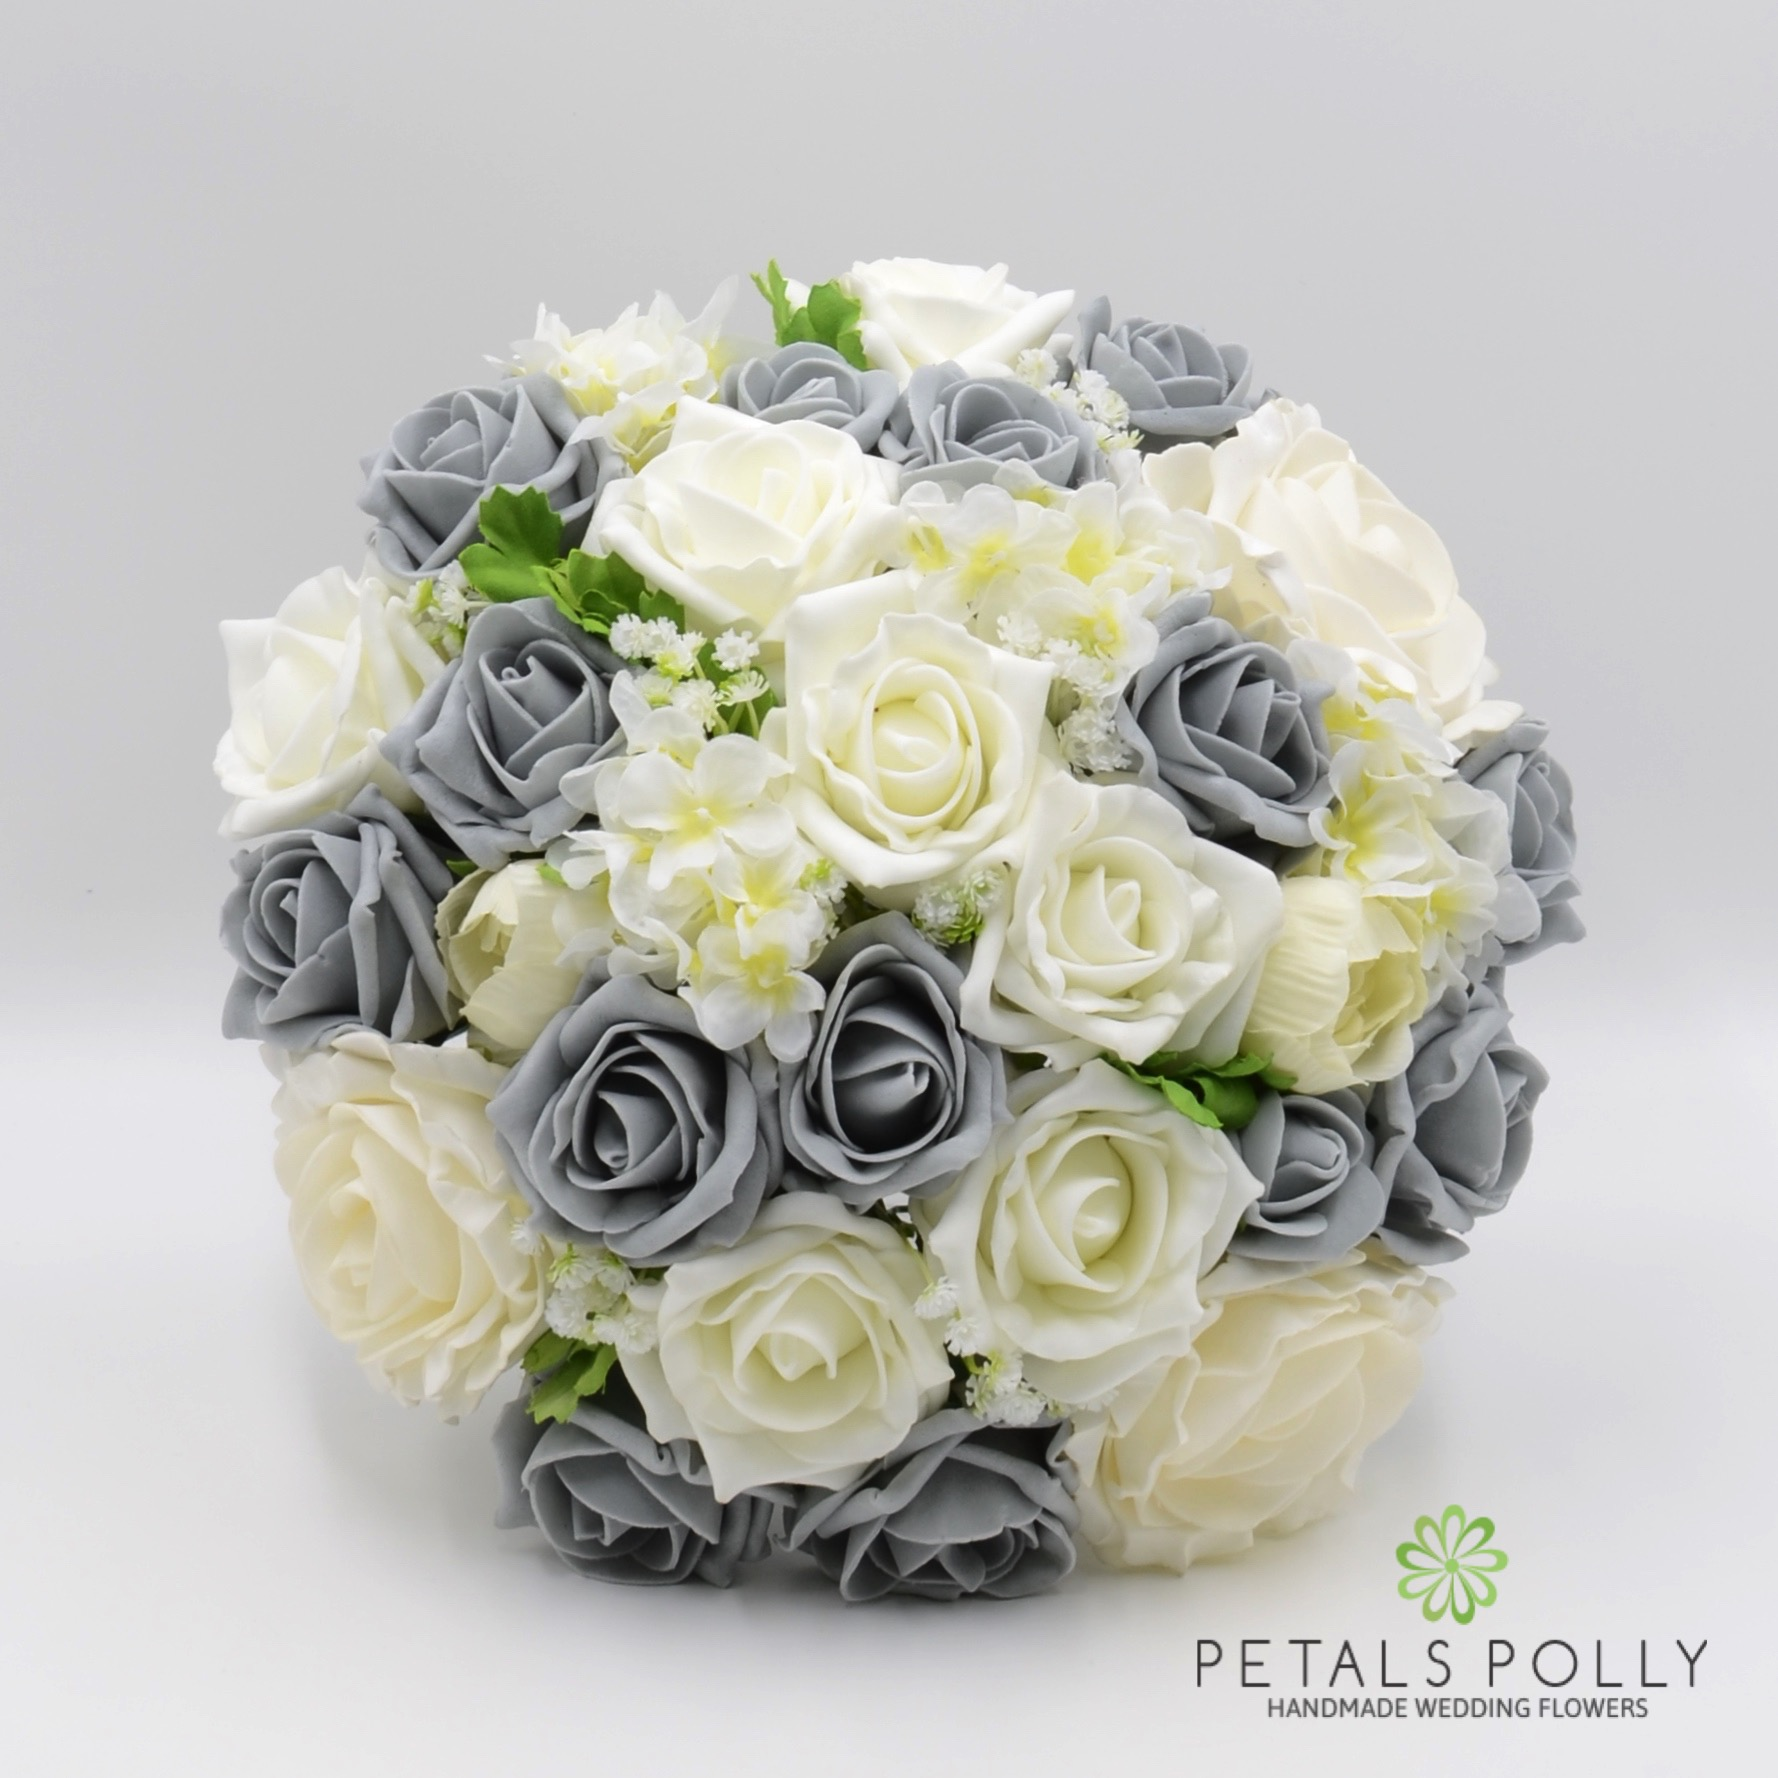 Grey & Ivory Rose Brides Posy with Ranunculus and Hydrangea -